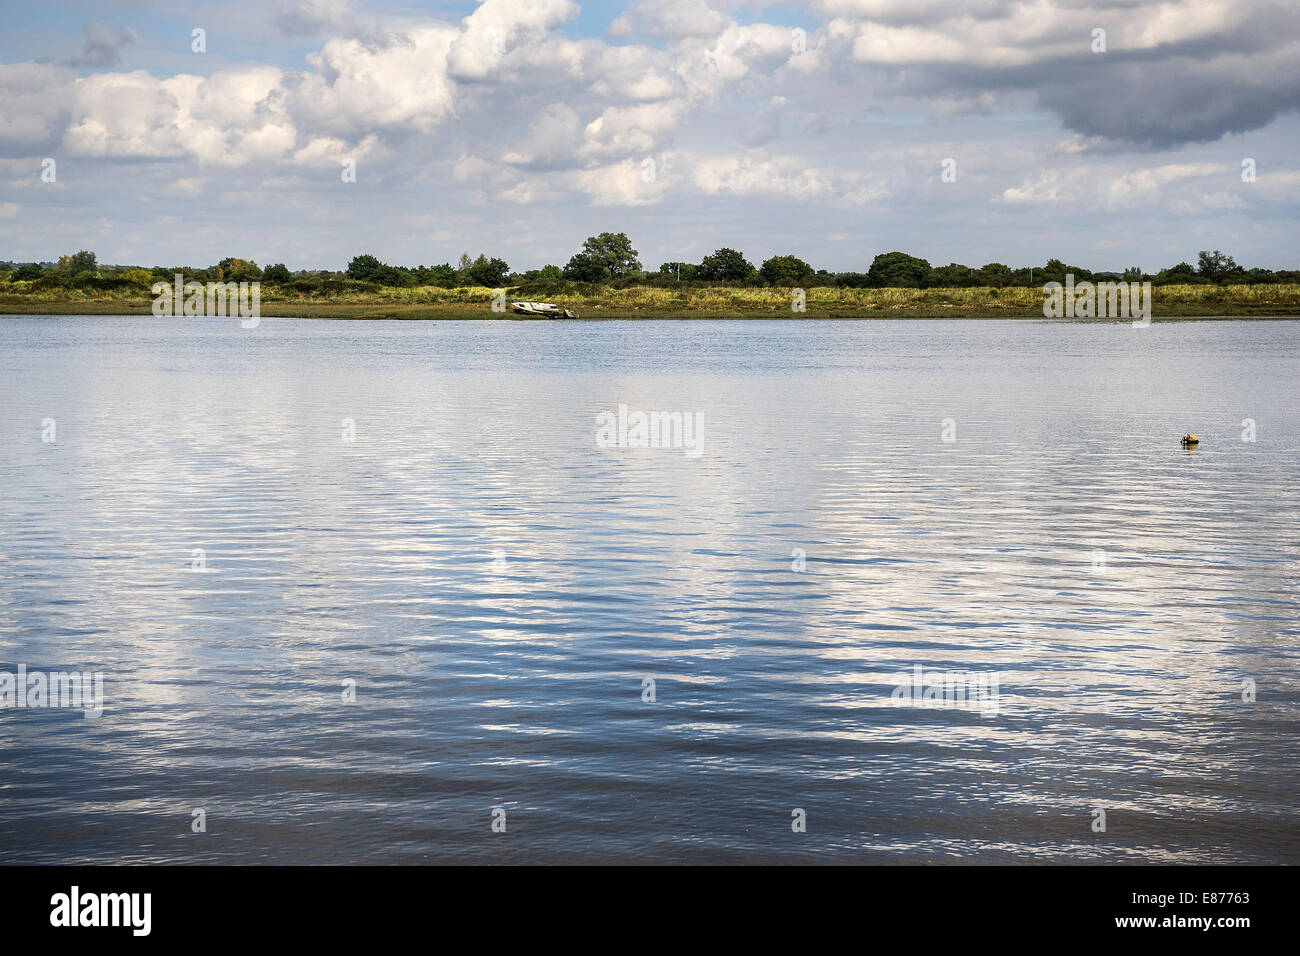 The East bank of the Blackwater River in Essex. - Stock Image